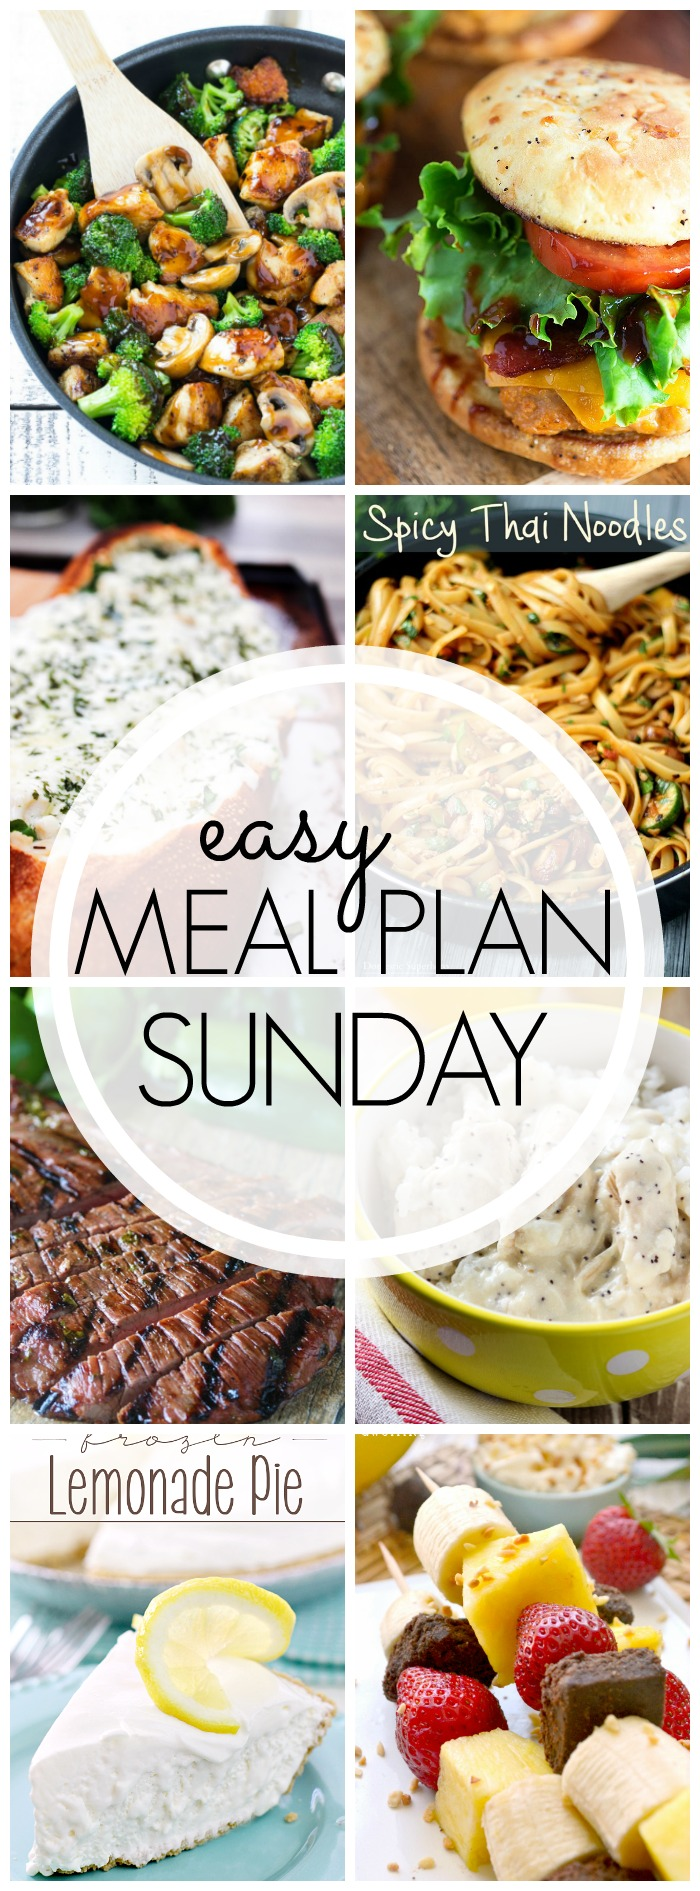 EASY MEAL PLAN – Week 50 - 7 delicious dinners and 2 desserts!